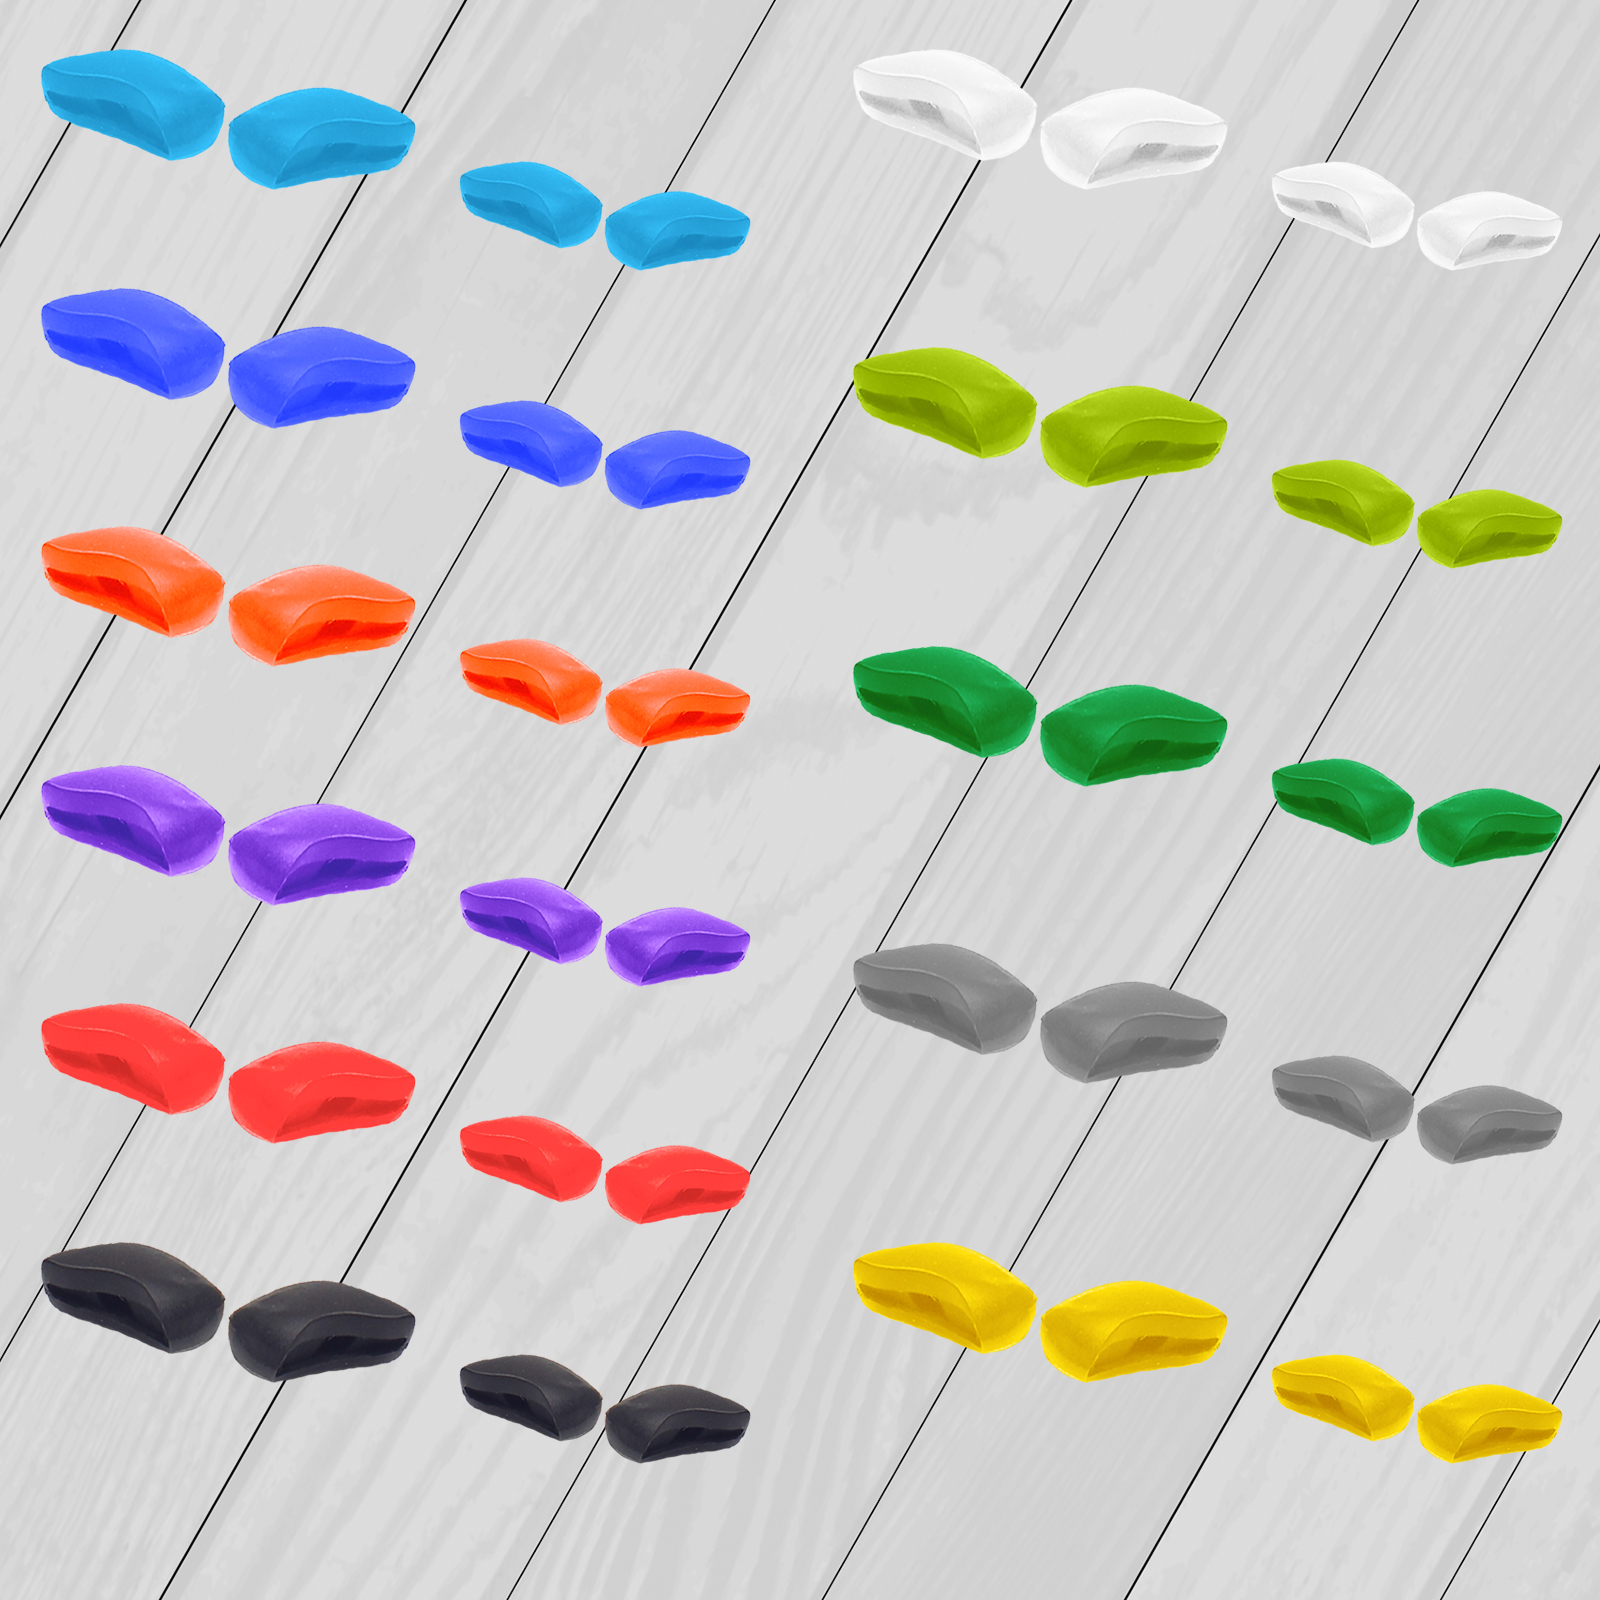 E.O.S Silicon Rubber Replacement Nose Pads For OAKLEY Flak 2.0 OO9295 / Flak 2.0 XL OO9188 Frame Multi-Options